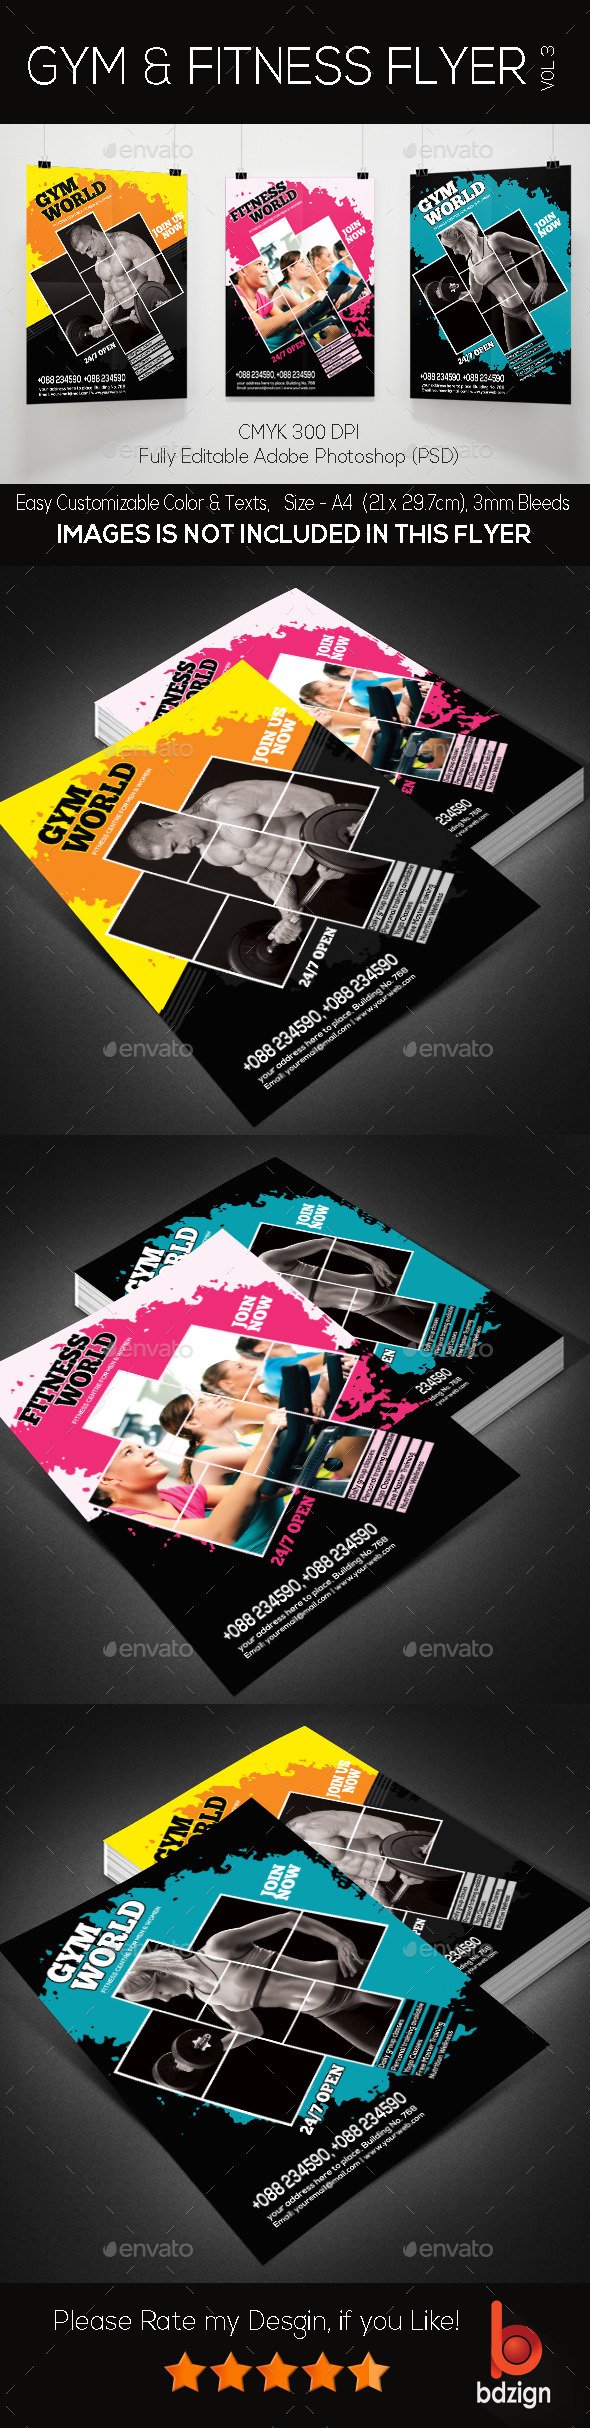 Gym and Fitness Flyer -Vol3